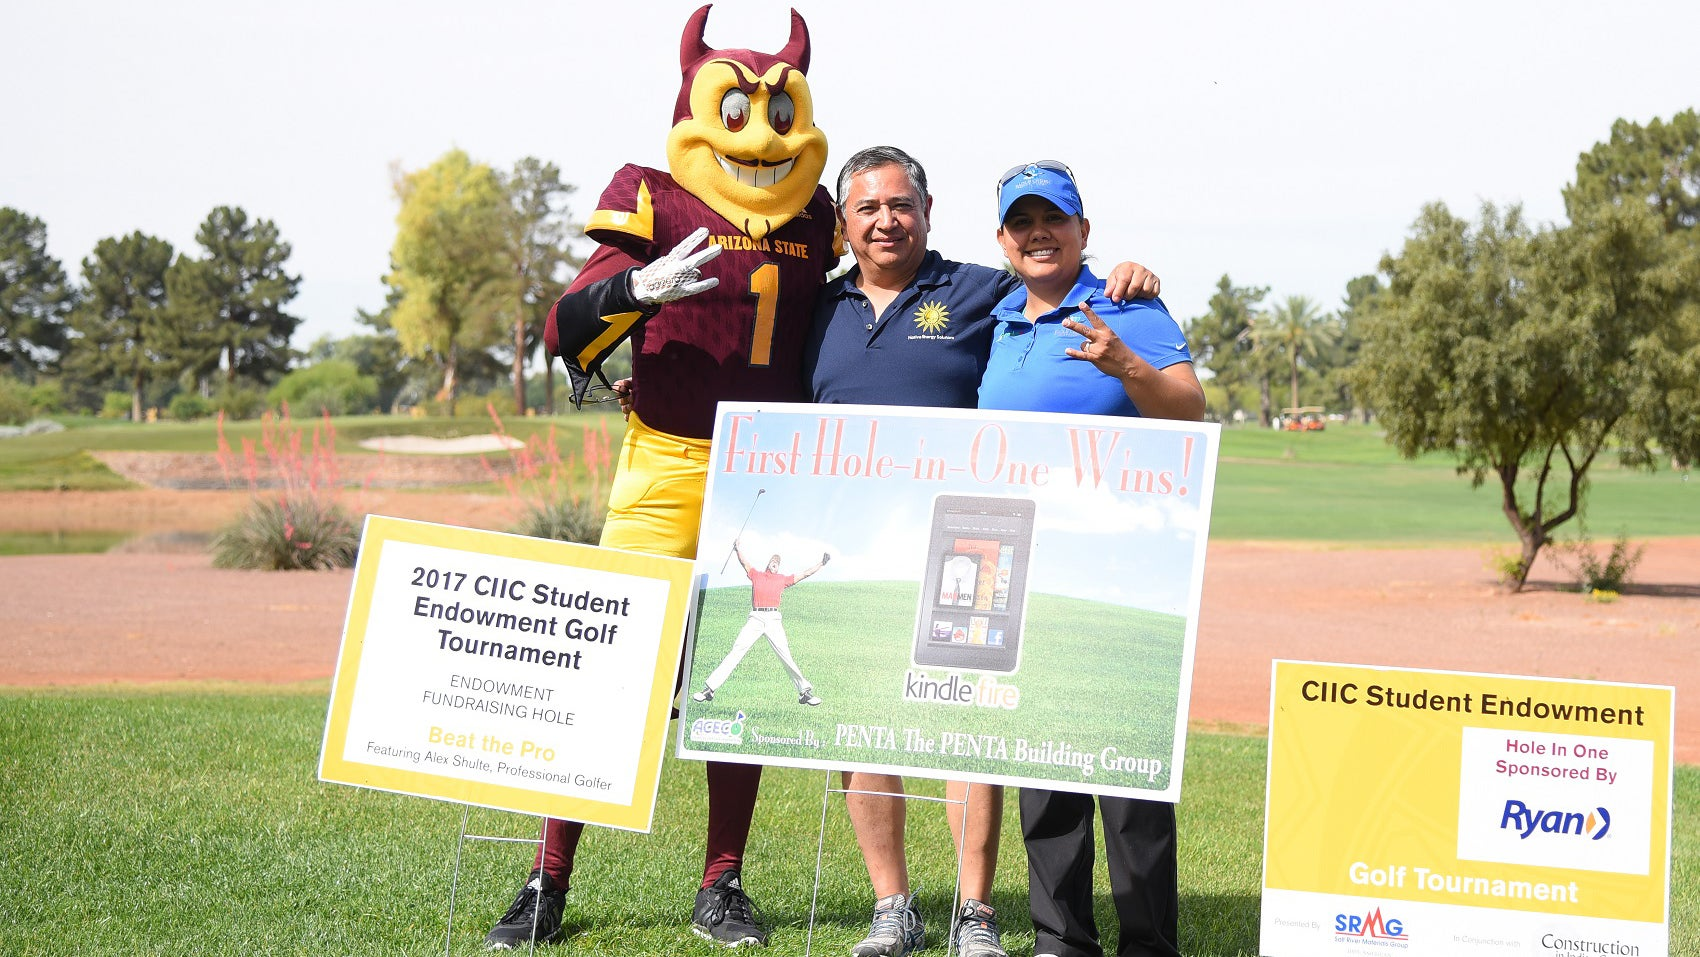 ASU's Sun Devil mascot, Sparky, stands with two sponsors at the CIIC Golf tournament